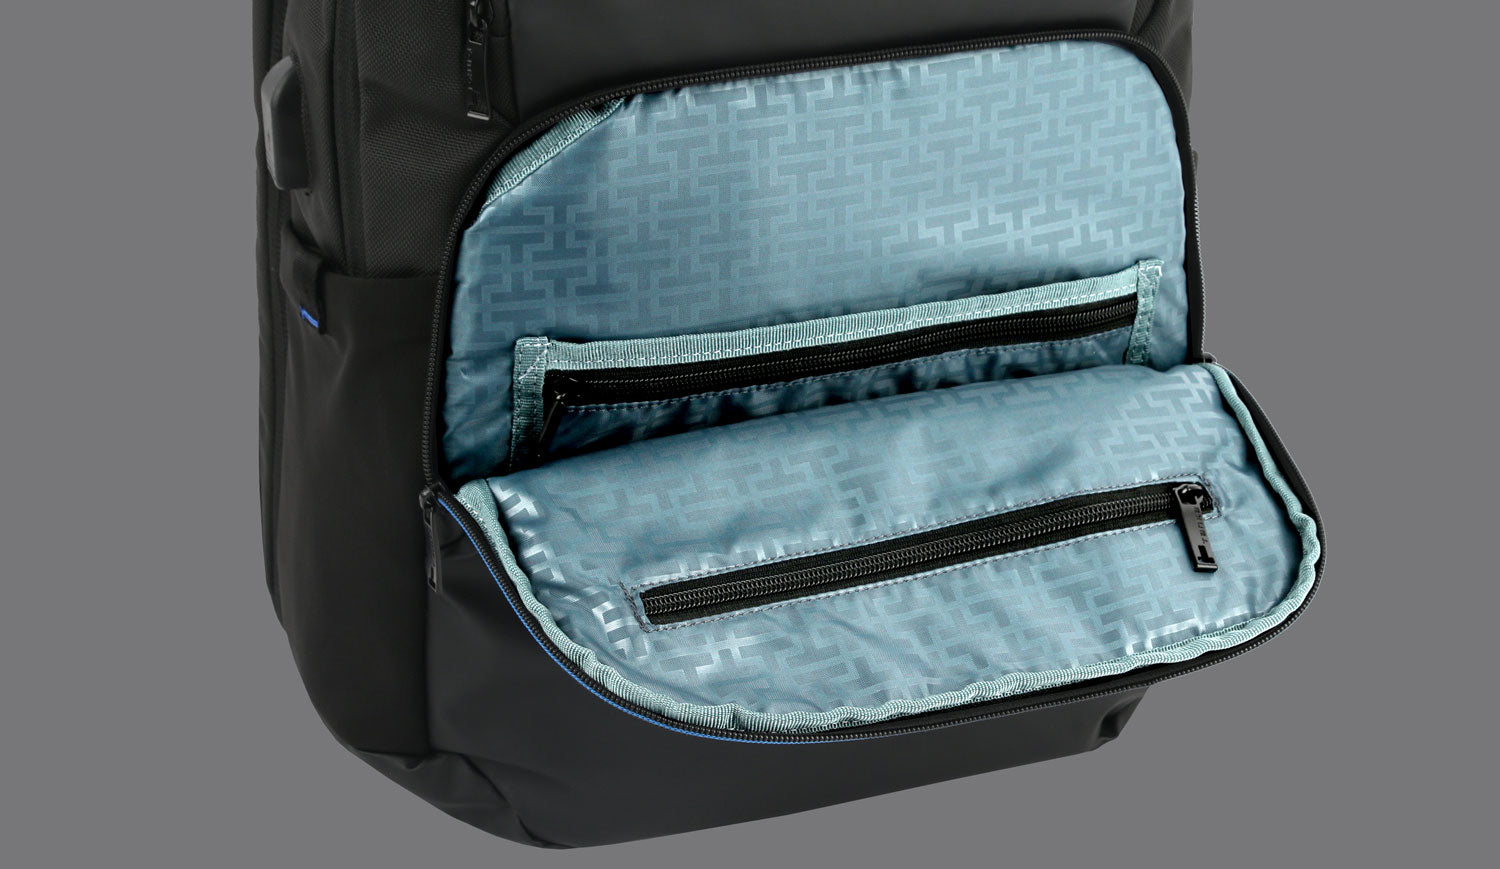 ROOMY MAIN COMPARTMENT AND CONVENIENTLY LOCATED UTILITY POCKETS WITH ORGANIZERS